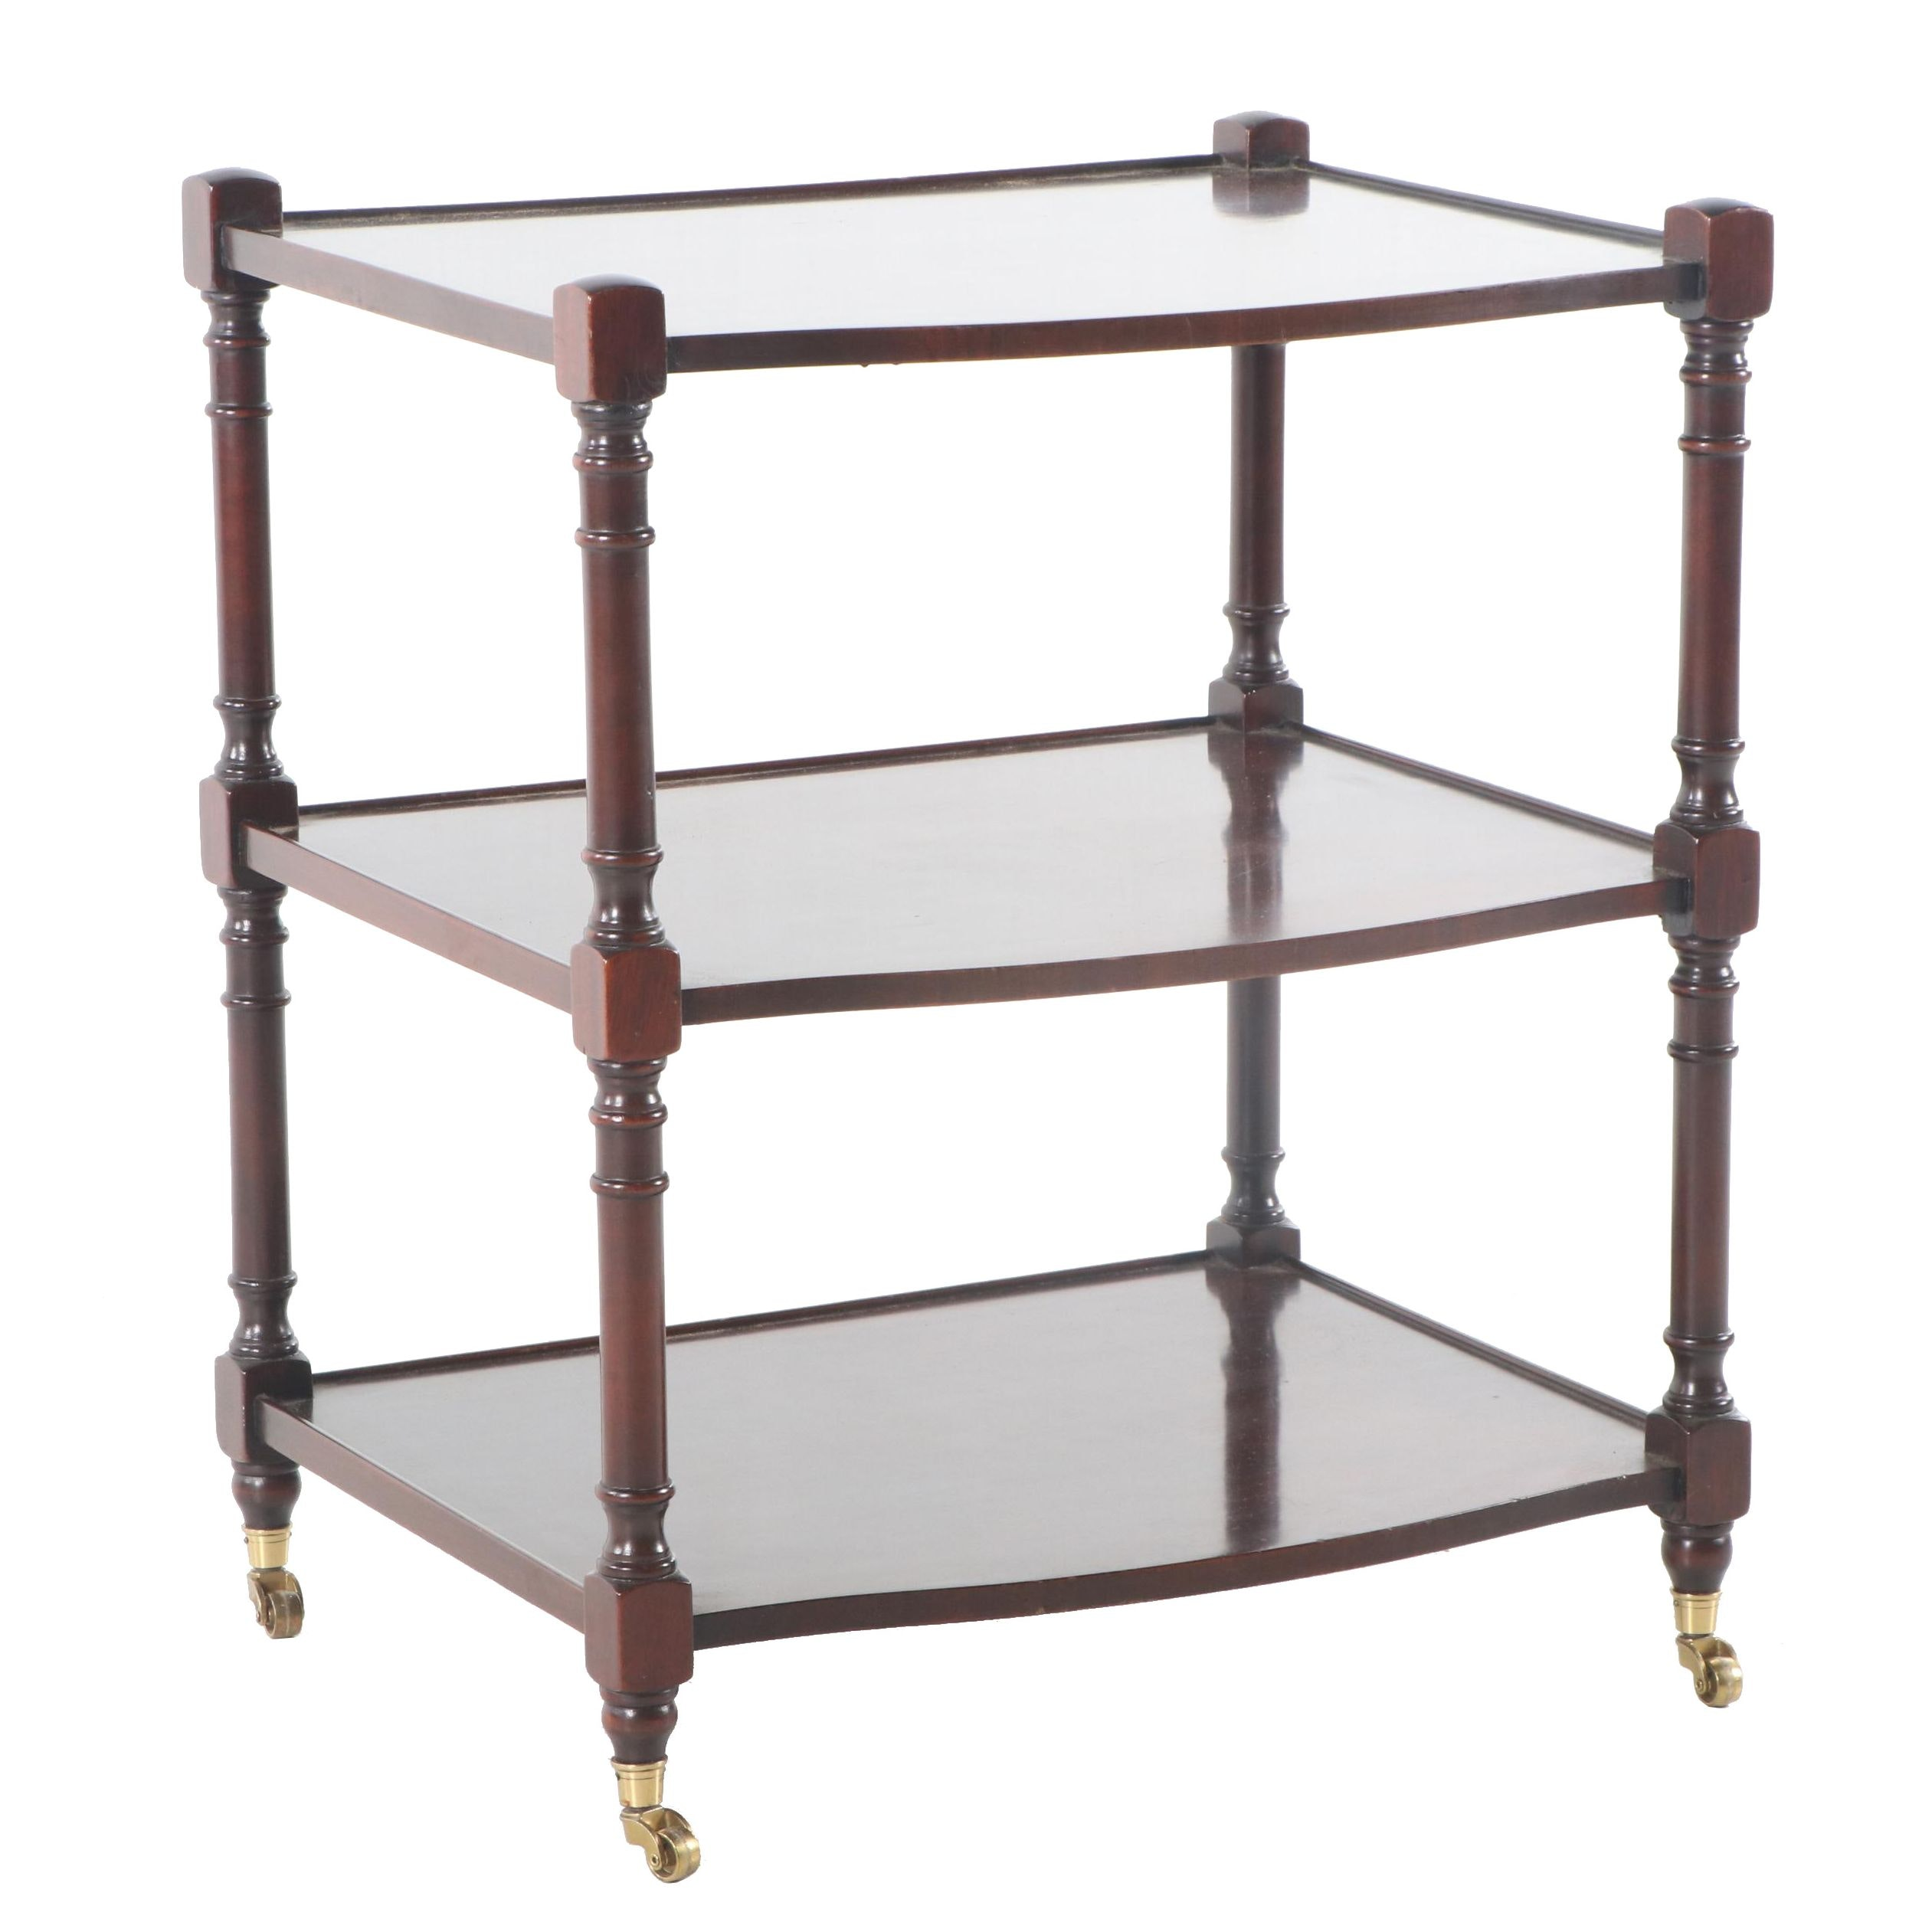 Mahogany Three-Tier Accent Table on Casters, 20th Century